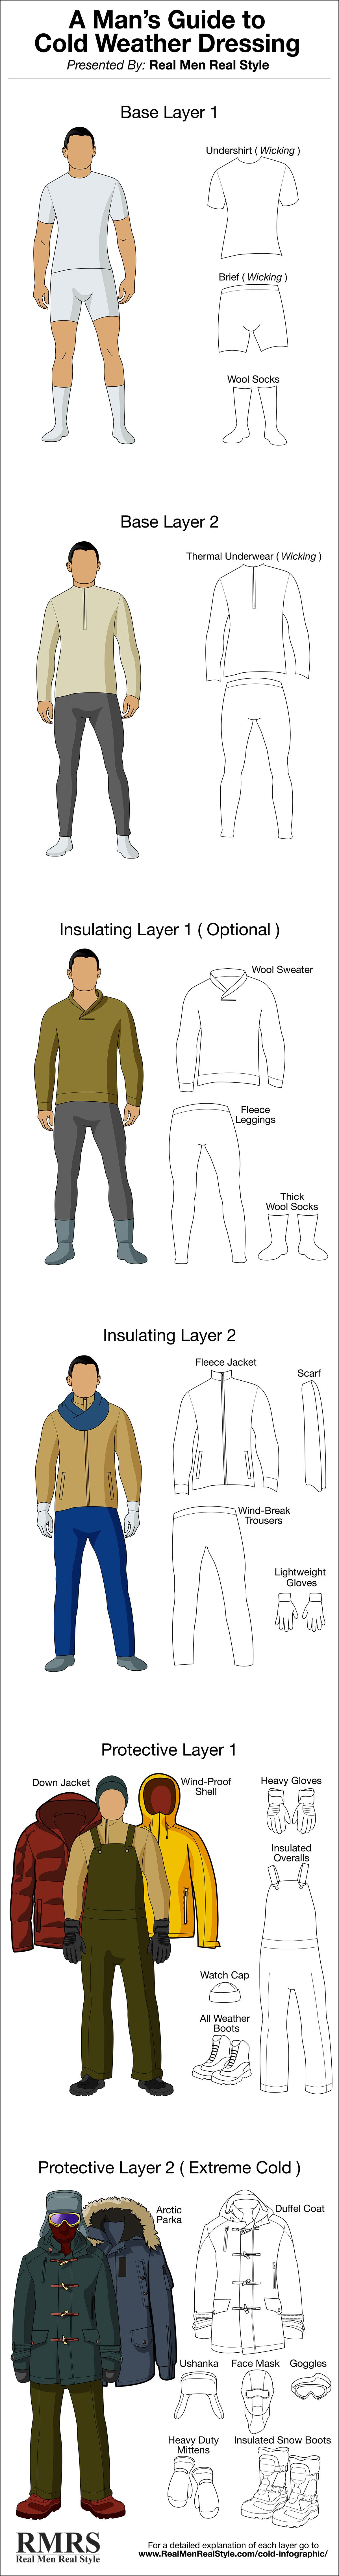 How To Dress Warm In Cold Weather Infographic Base Layer